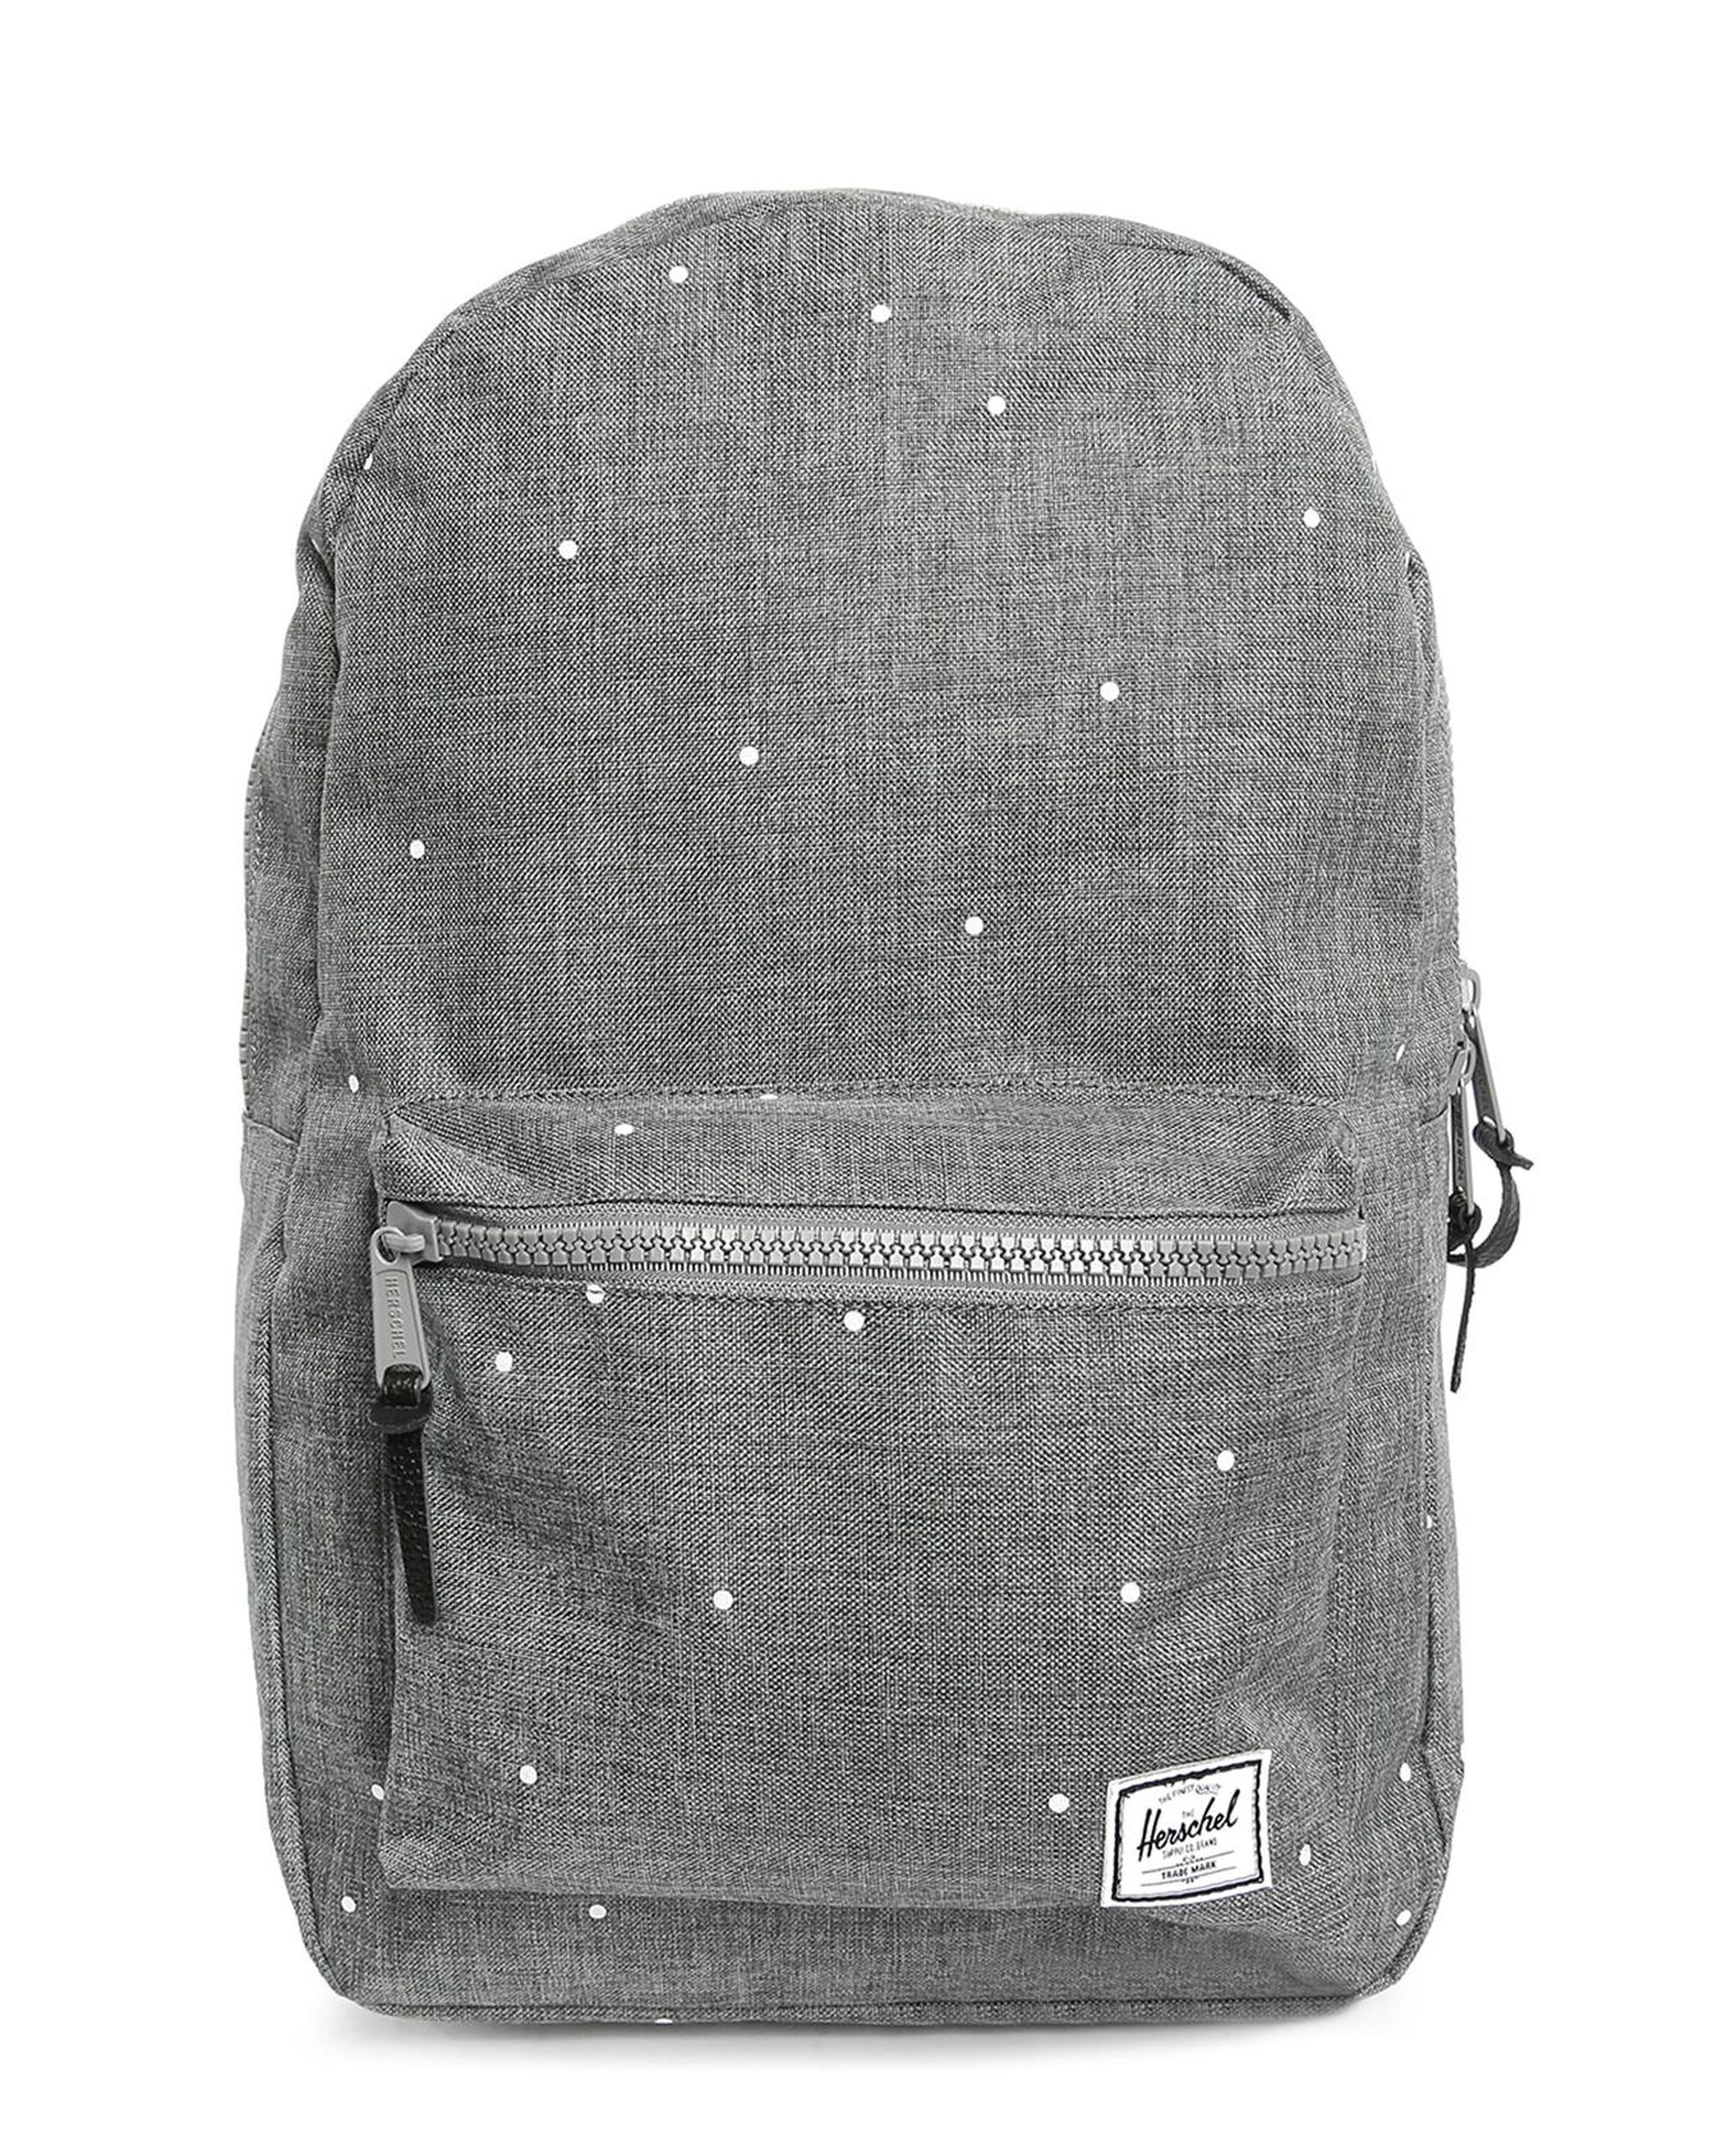 ffb2bf2f6dc Herschel Supply Co.   Gray Grey Settlement White Micro Dot Backpack   Lyst